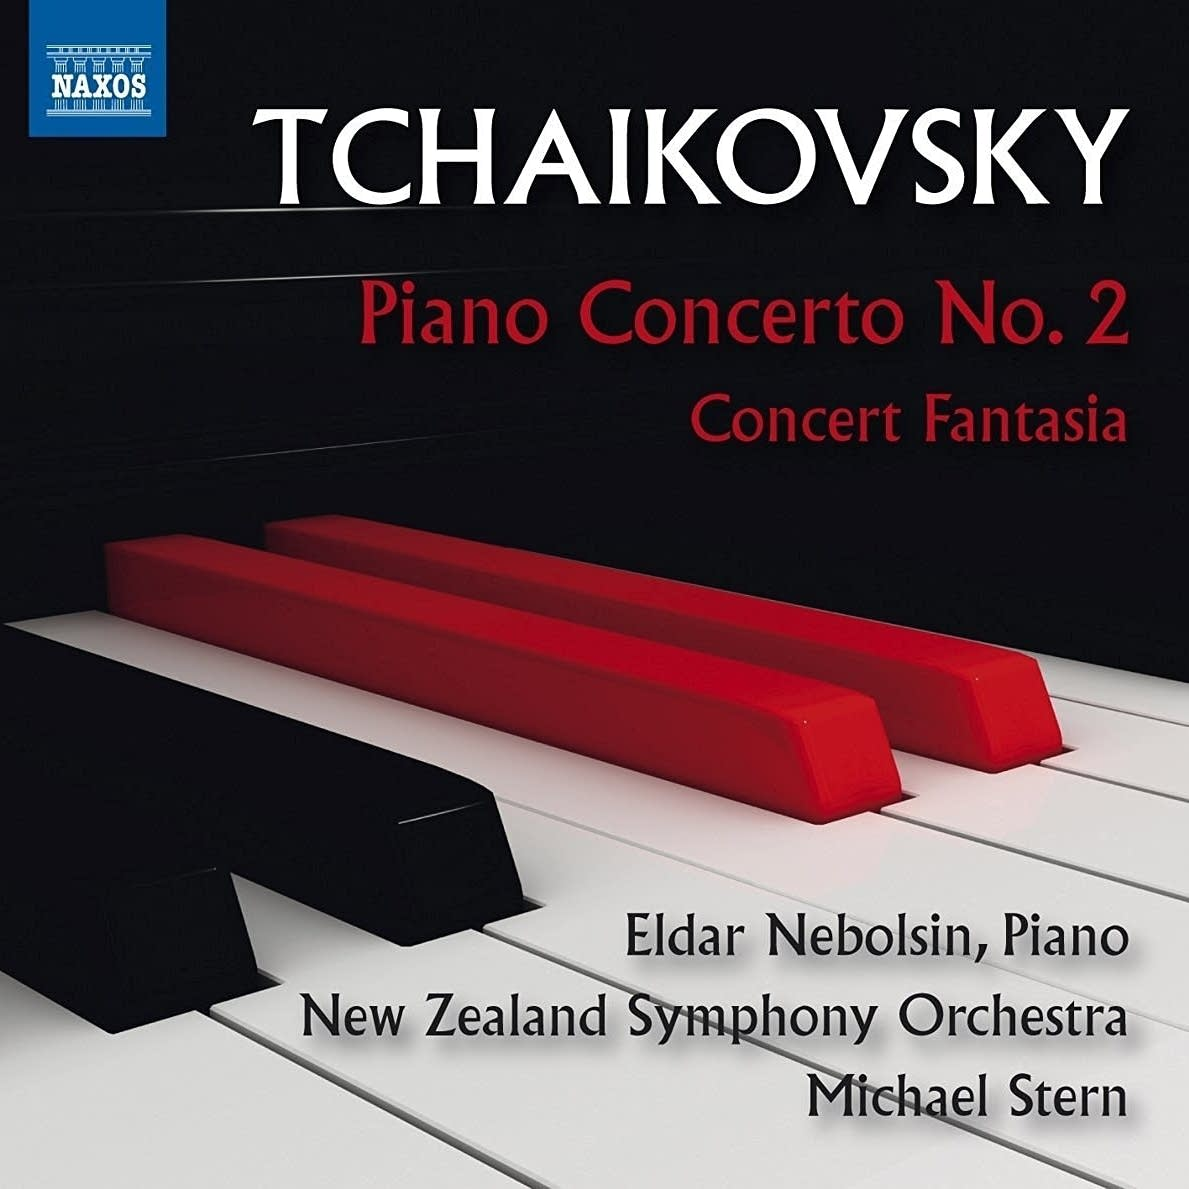 https://img.apmcdn.org/6ea3014472672d76619e76cdd90fe6a28126145f/square/8a9aaa-20160831-peter-tchaikovsky-piano-concerto-no-2.jpg